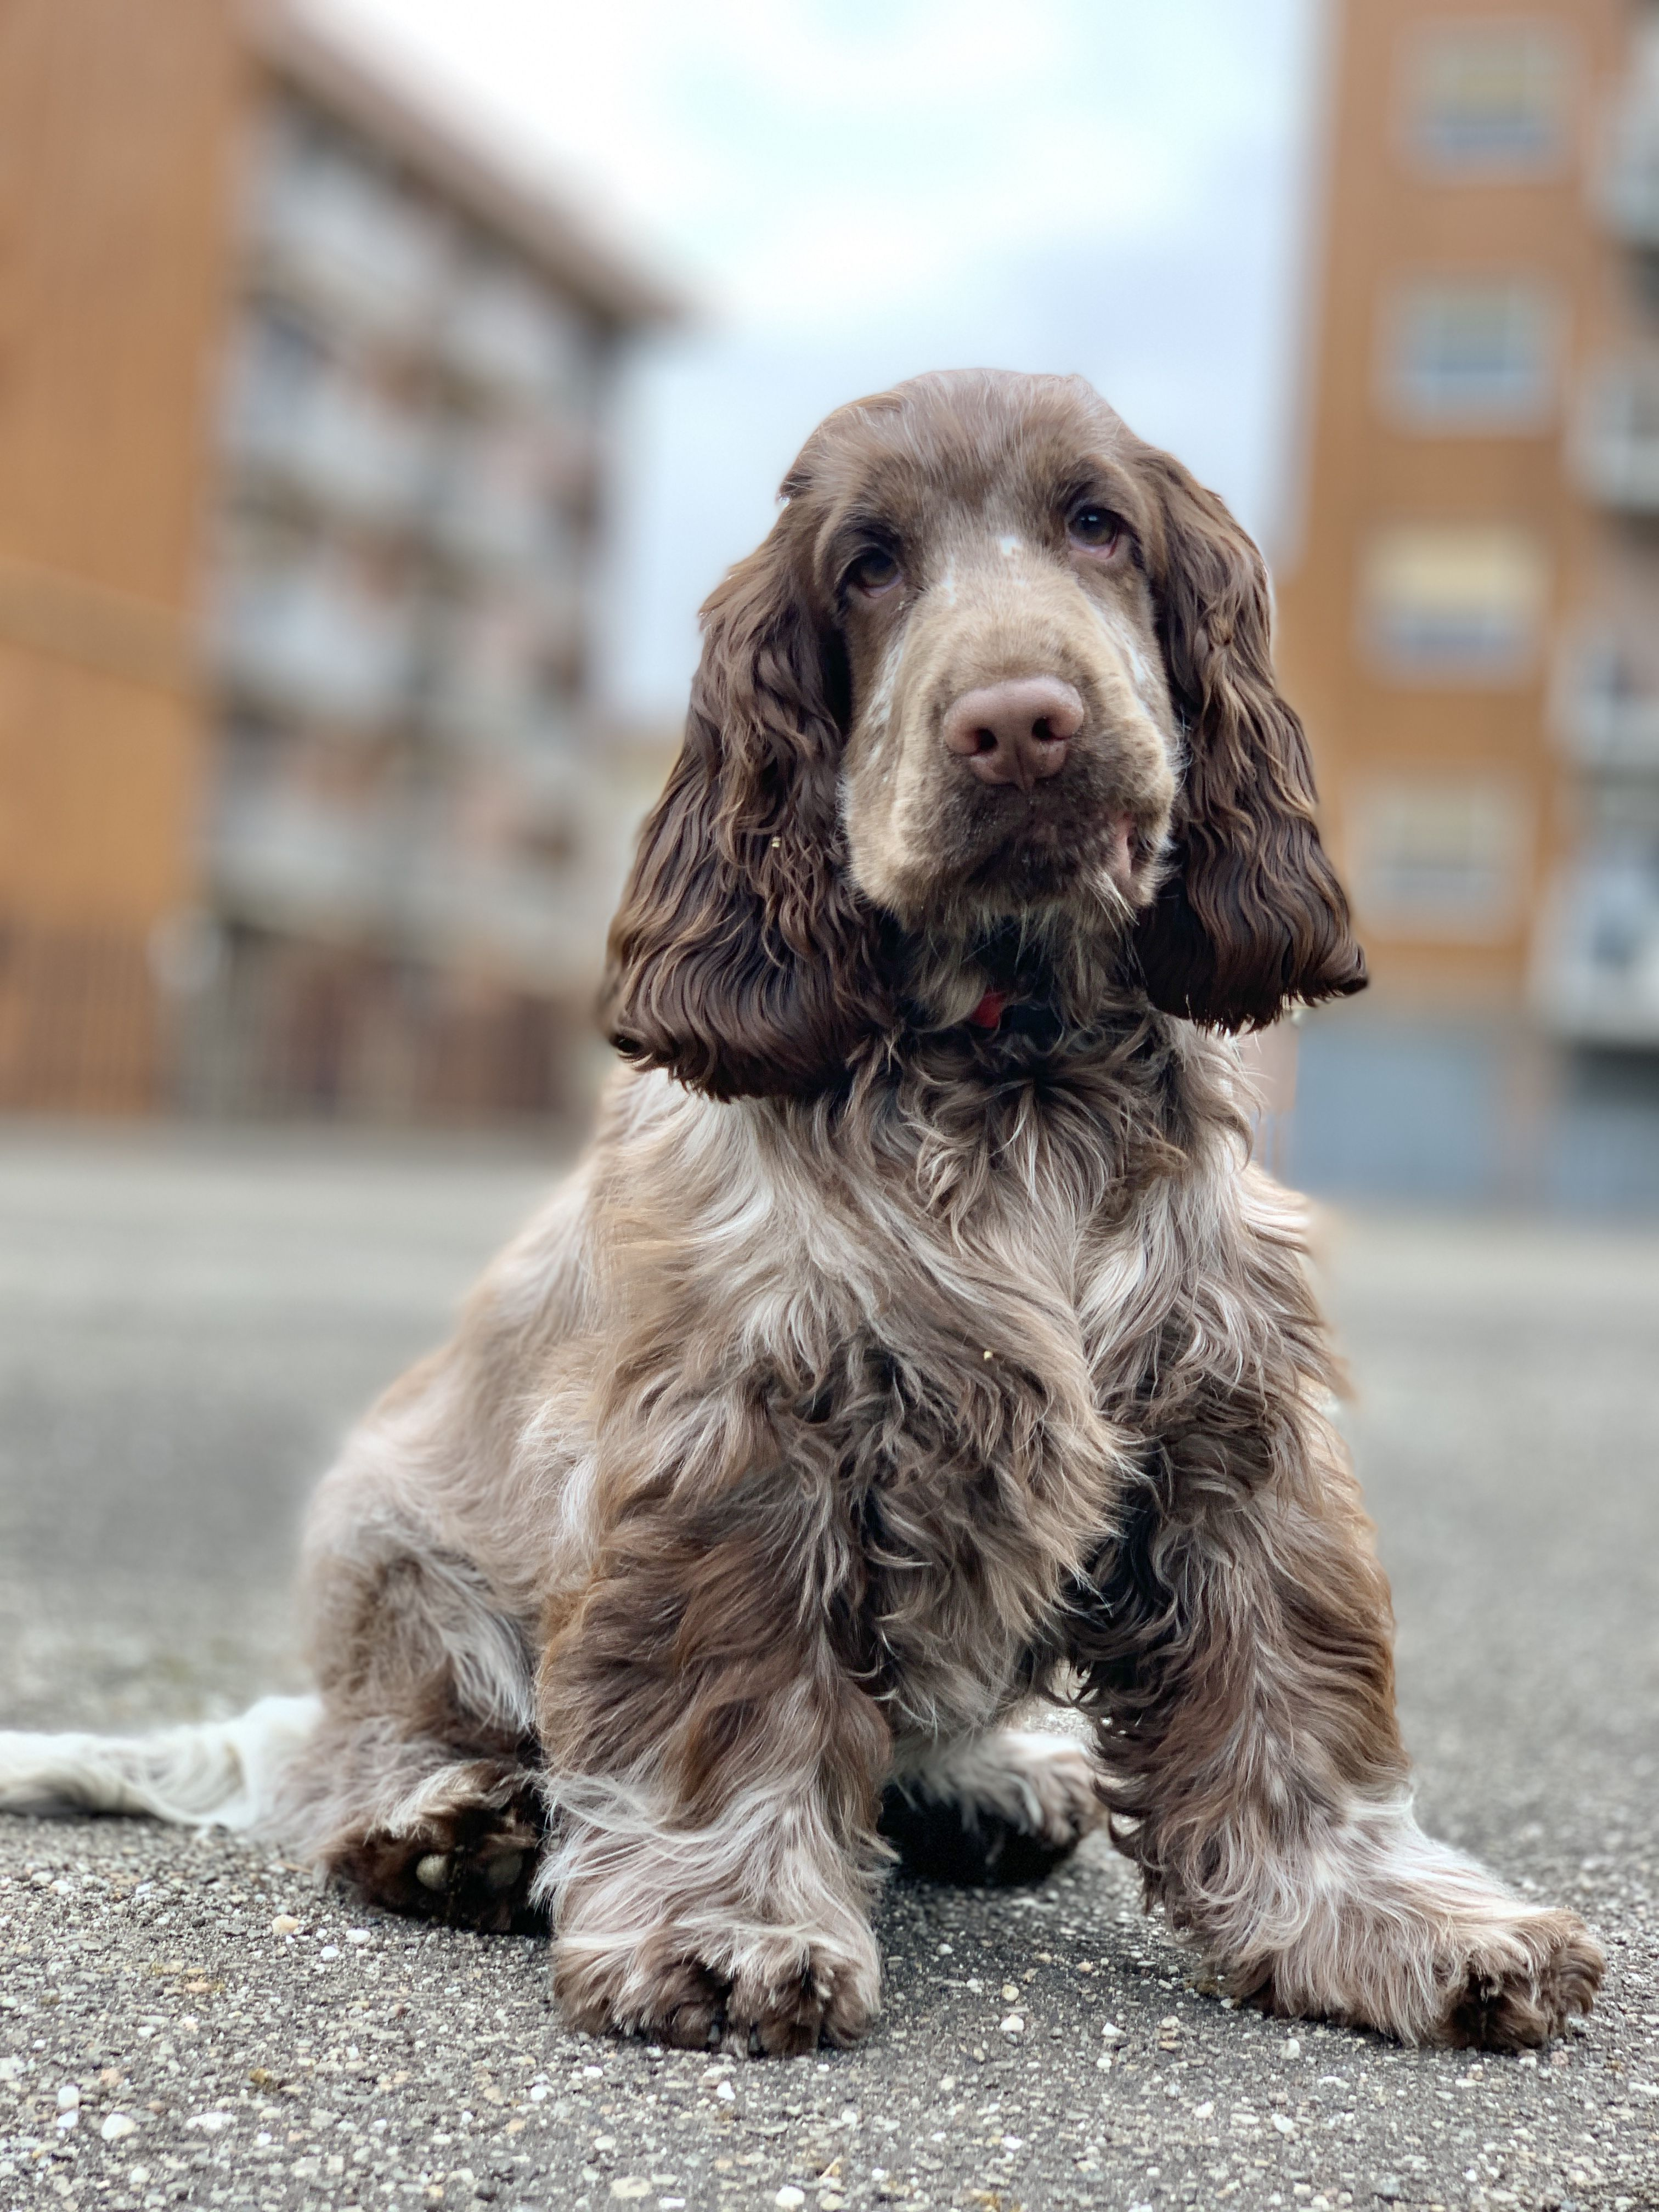 Pin By Caustin On The Most Beautiful Cocker Spaniels In The World In 2020 Cocker Spaniel English Cocker Crazy Dog Lady